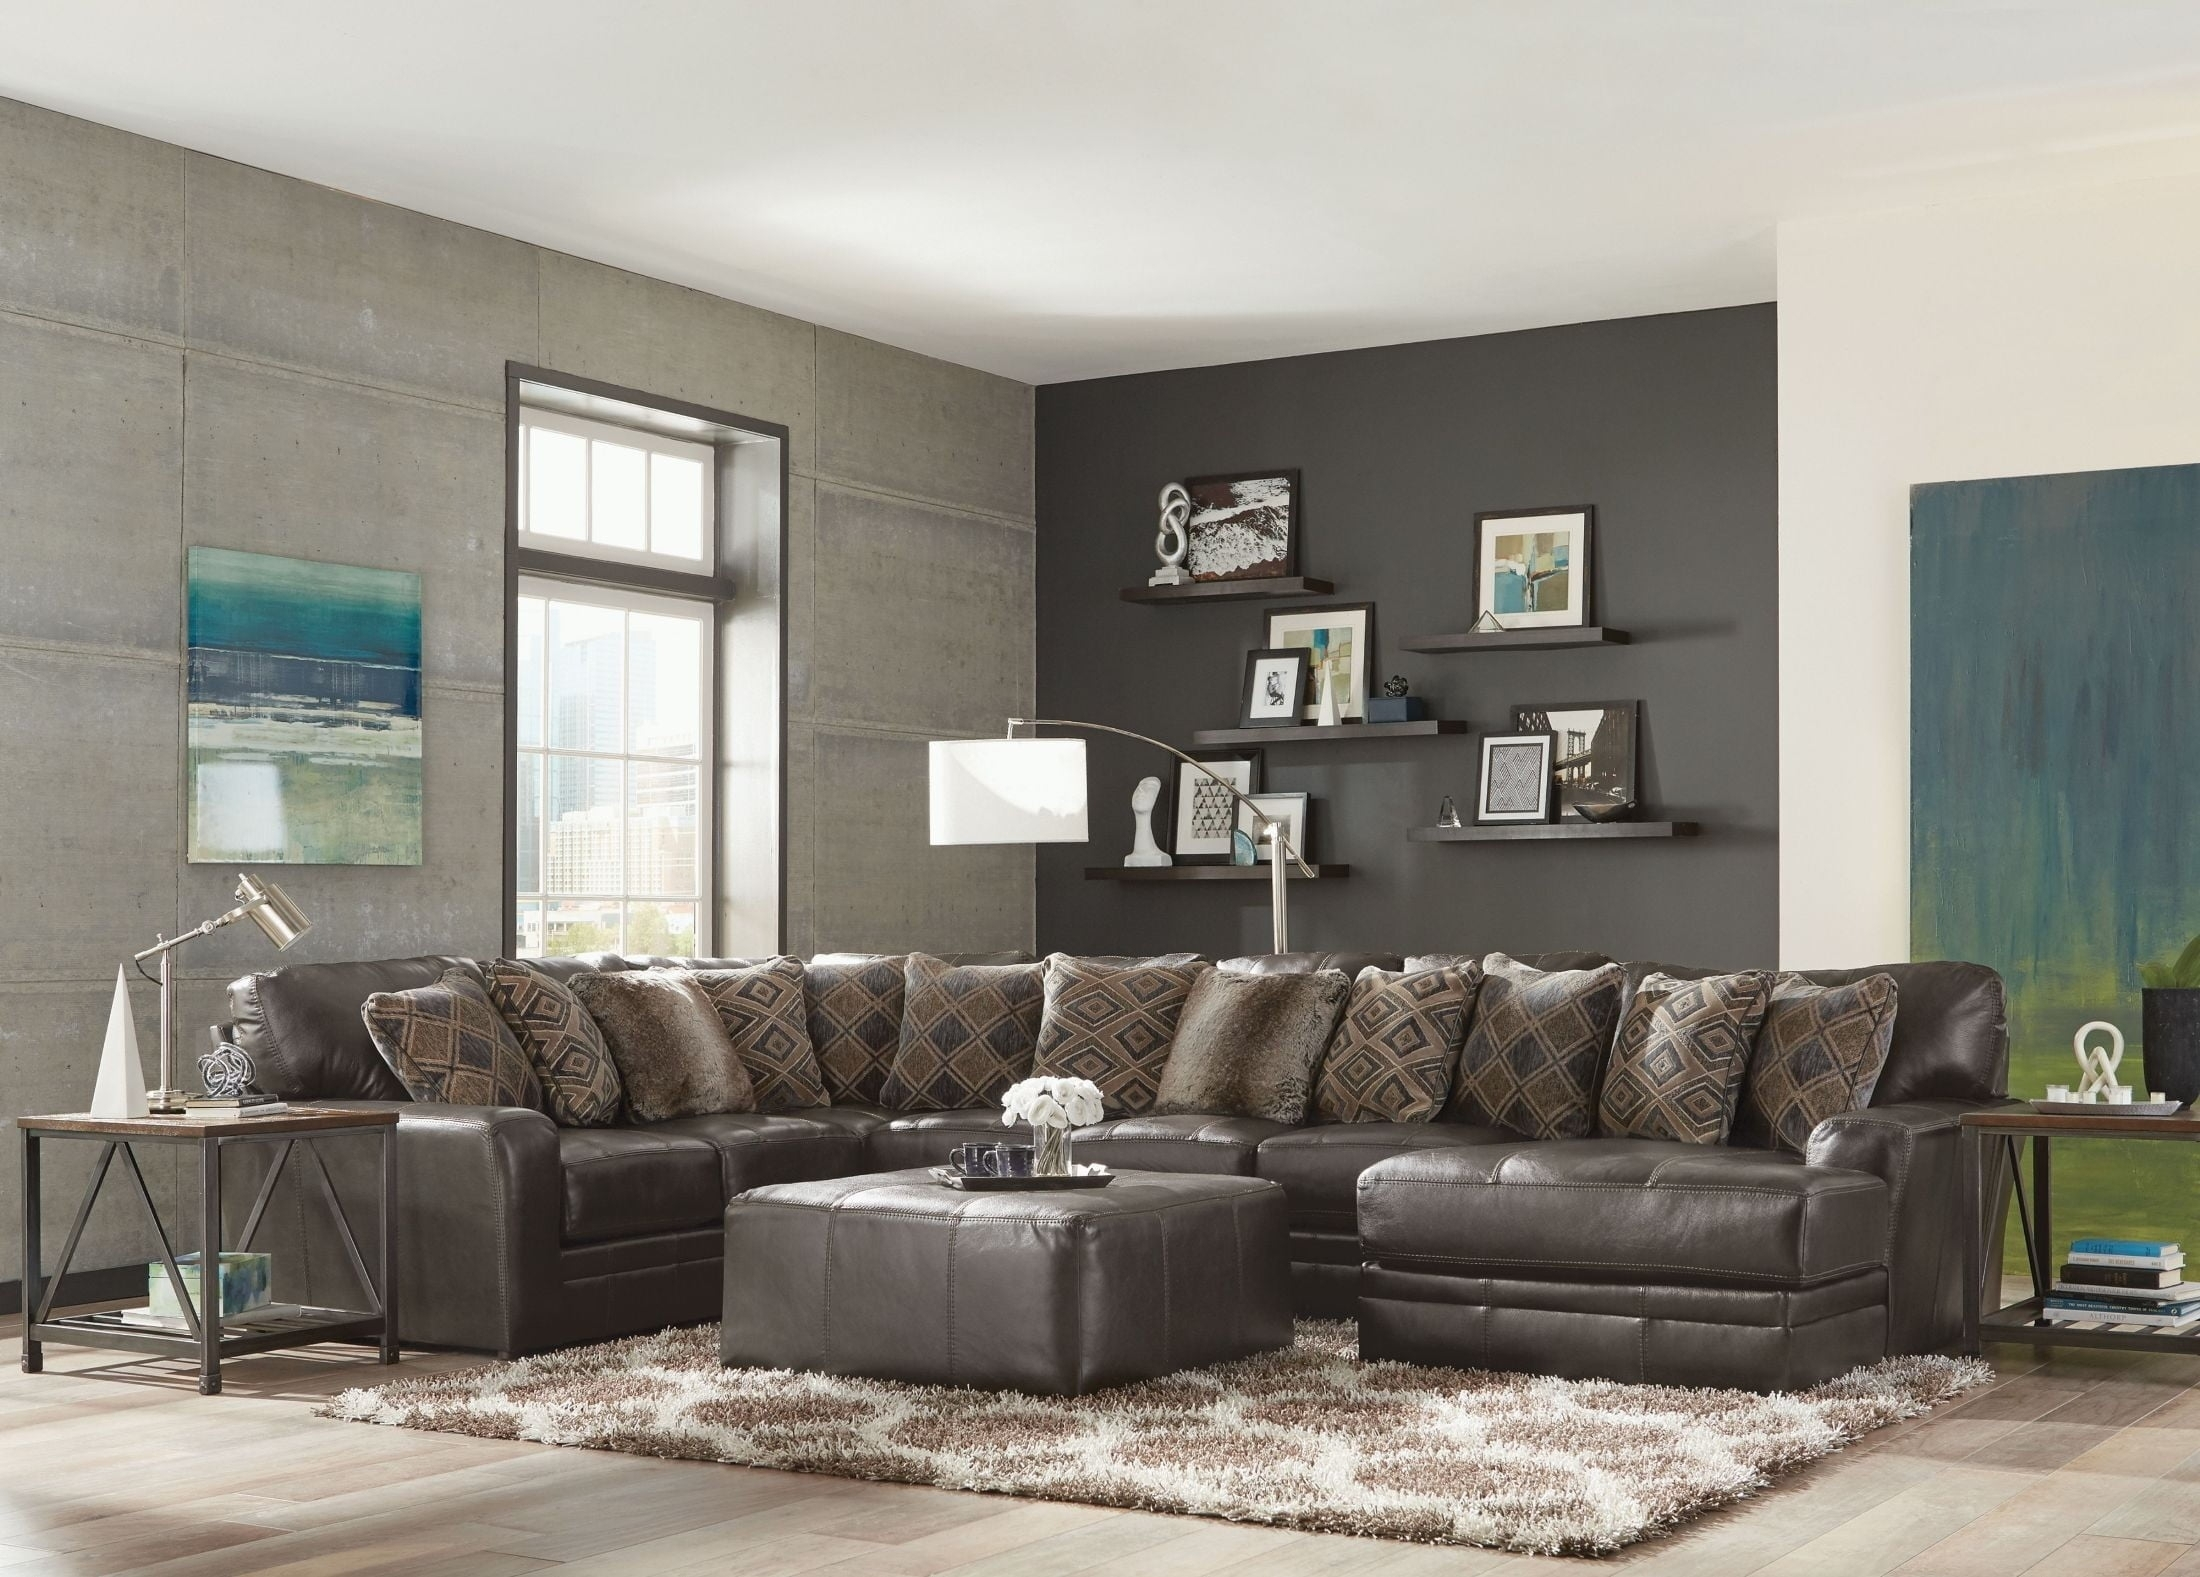 Denali Steel Sectional From Jackson | Coleman Furniture with regard to Jackson 6 Piece Power Reclining Sectionals (Image 11 of 30)